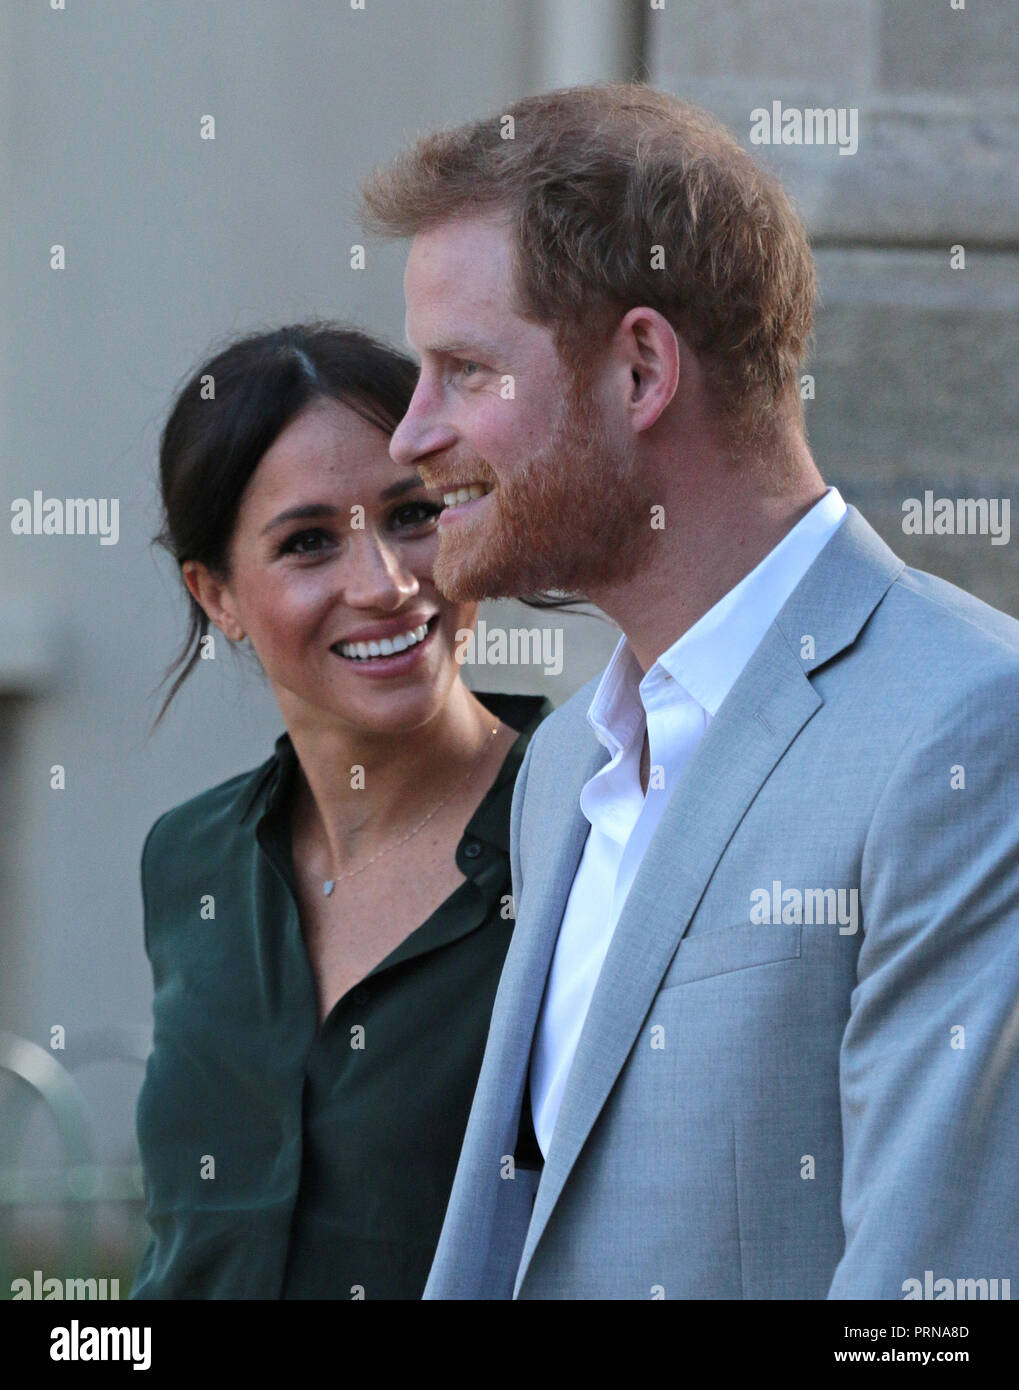 Chichester, Sussex , UK. 3rd October, 2018. Meghan Markle, Duchess of Sussex, and Prince Harry, Duke of Sussex, visit Chichester in Sussex, on their first joint visit to the County that inspired their royal titles. Prince Harry, Duke of Sussex, and Meghan Markle, Duchess of Sussex, visit Chichester, Sussex , on October 3, 2018. Credit: Paul Marriott/Alamy Live News Stock Photo